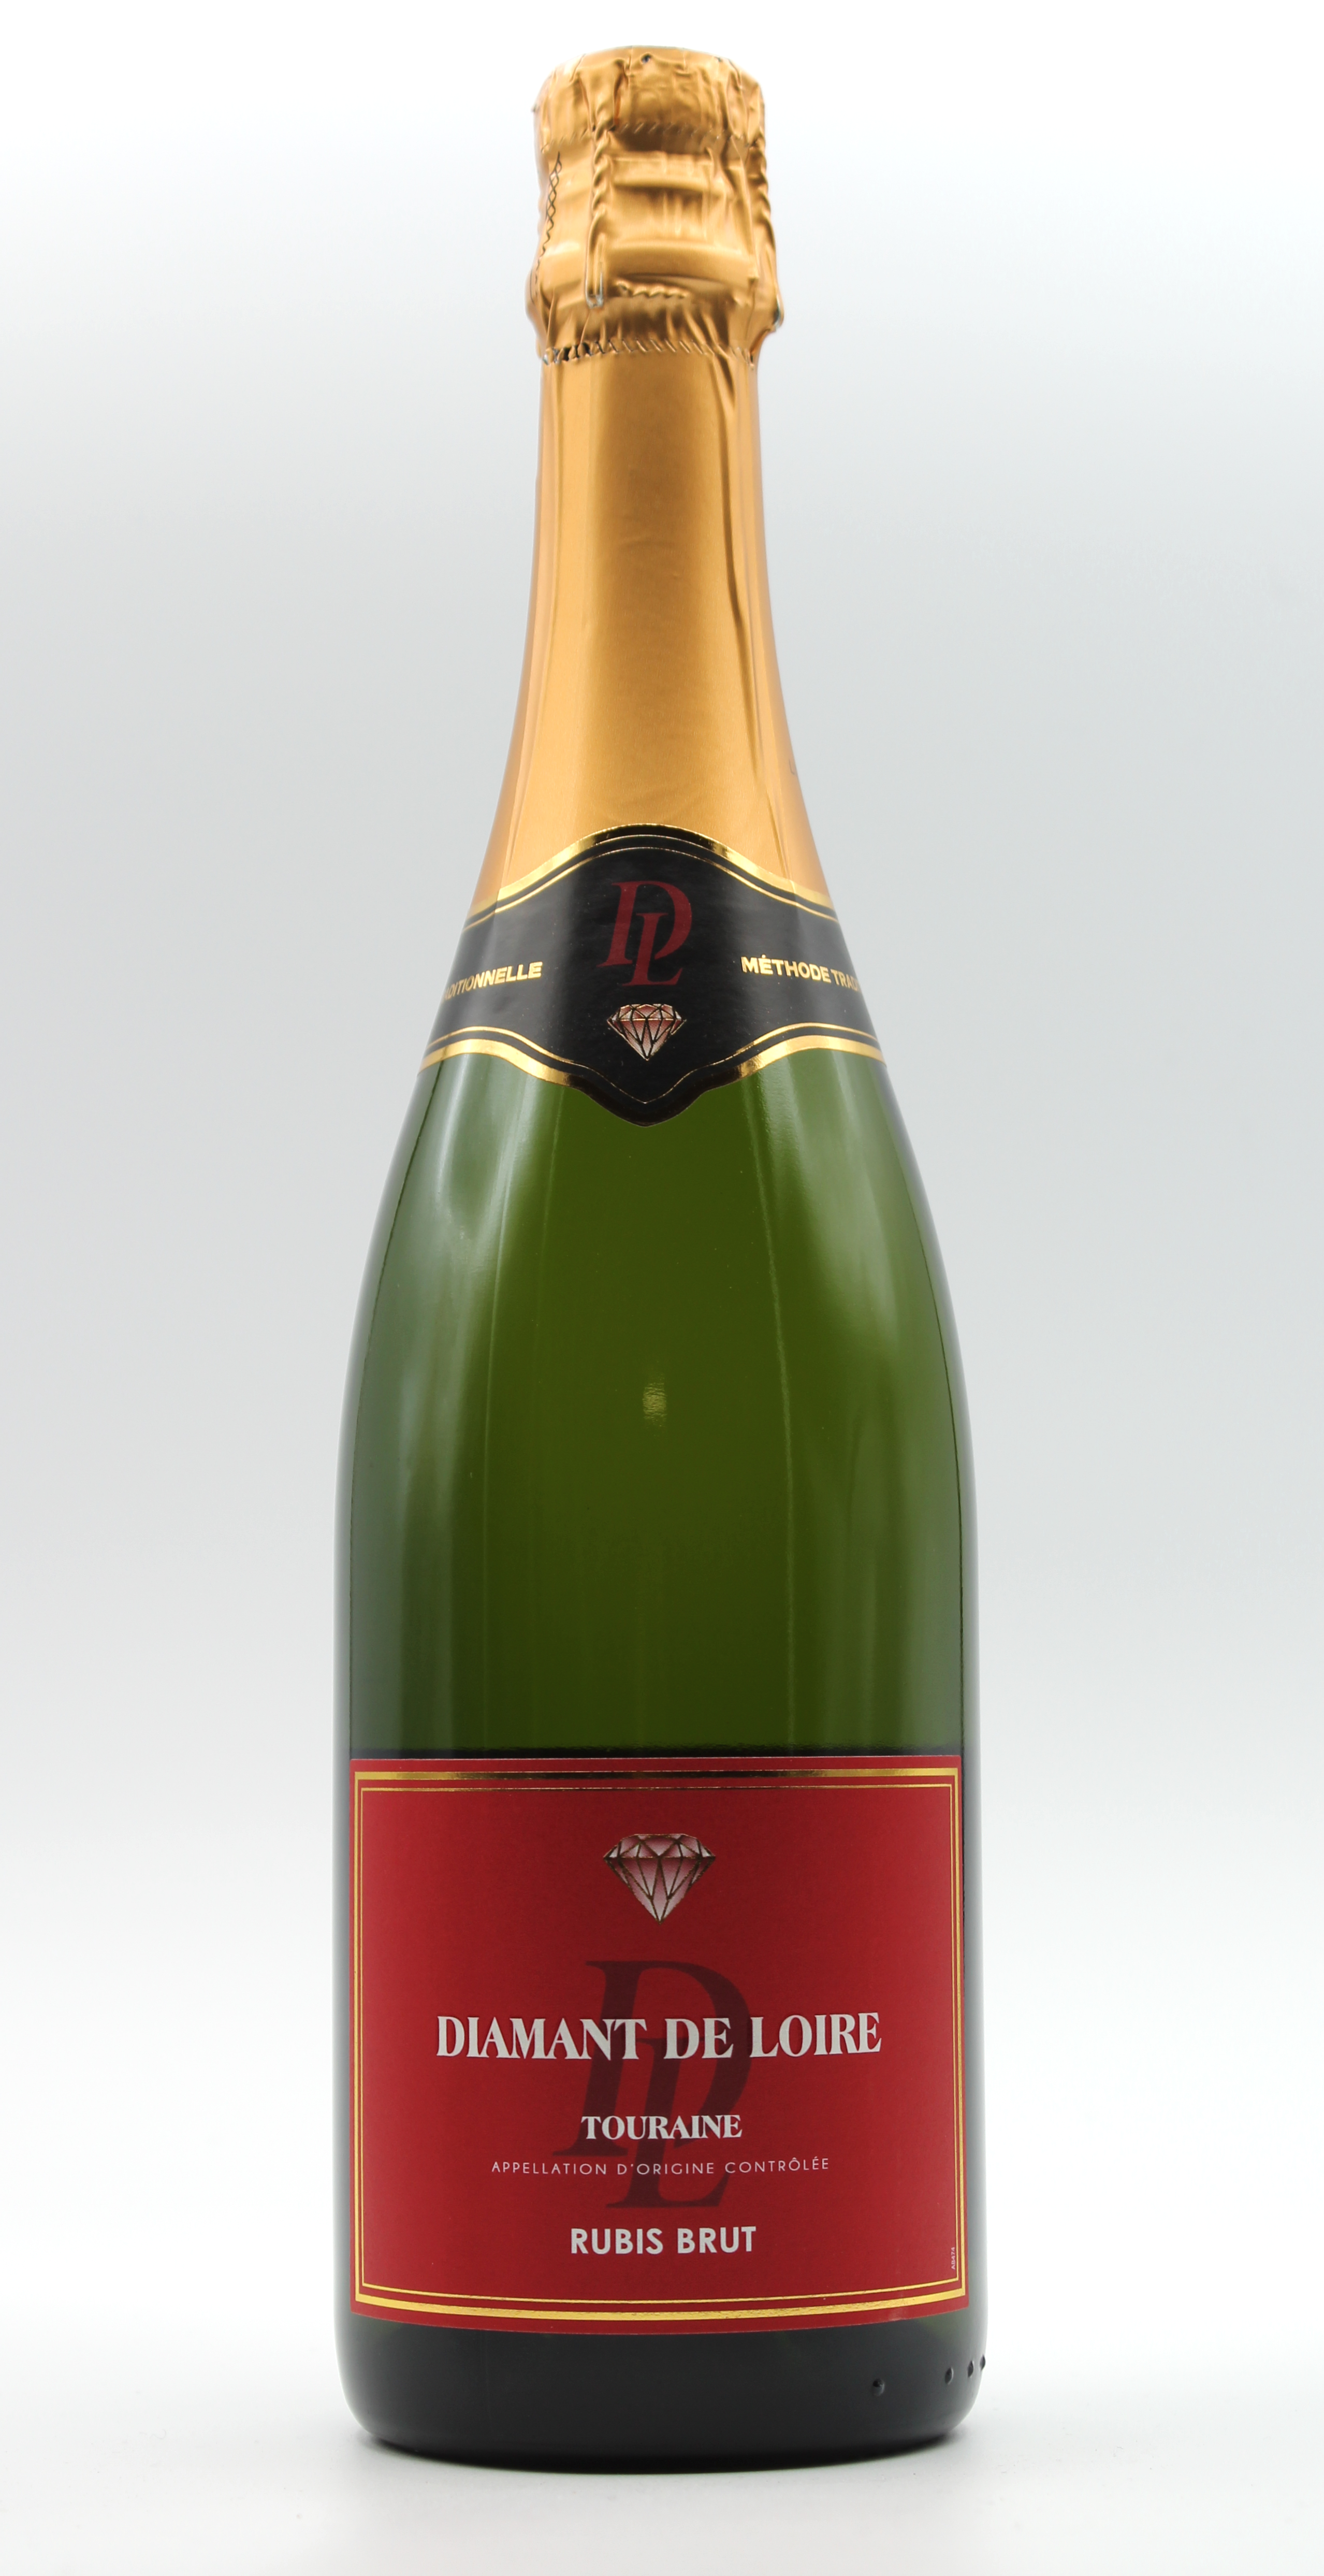 Touraine Blanc Brut Methode Traditionelle Cuveé '' Rubis'' Diamant Loire